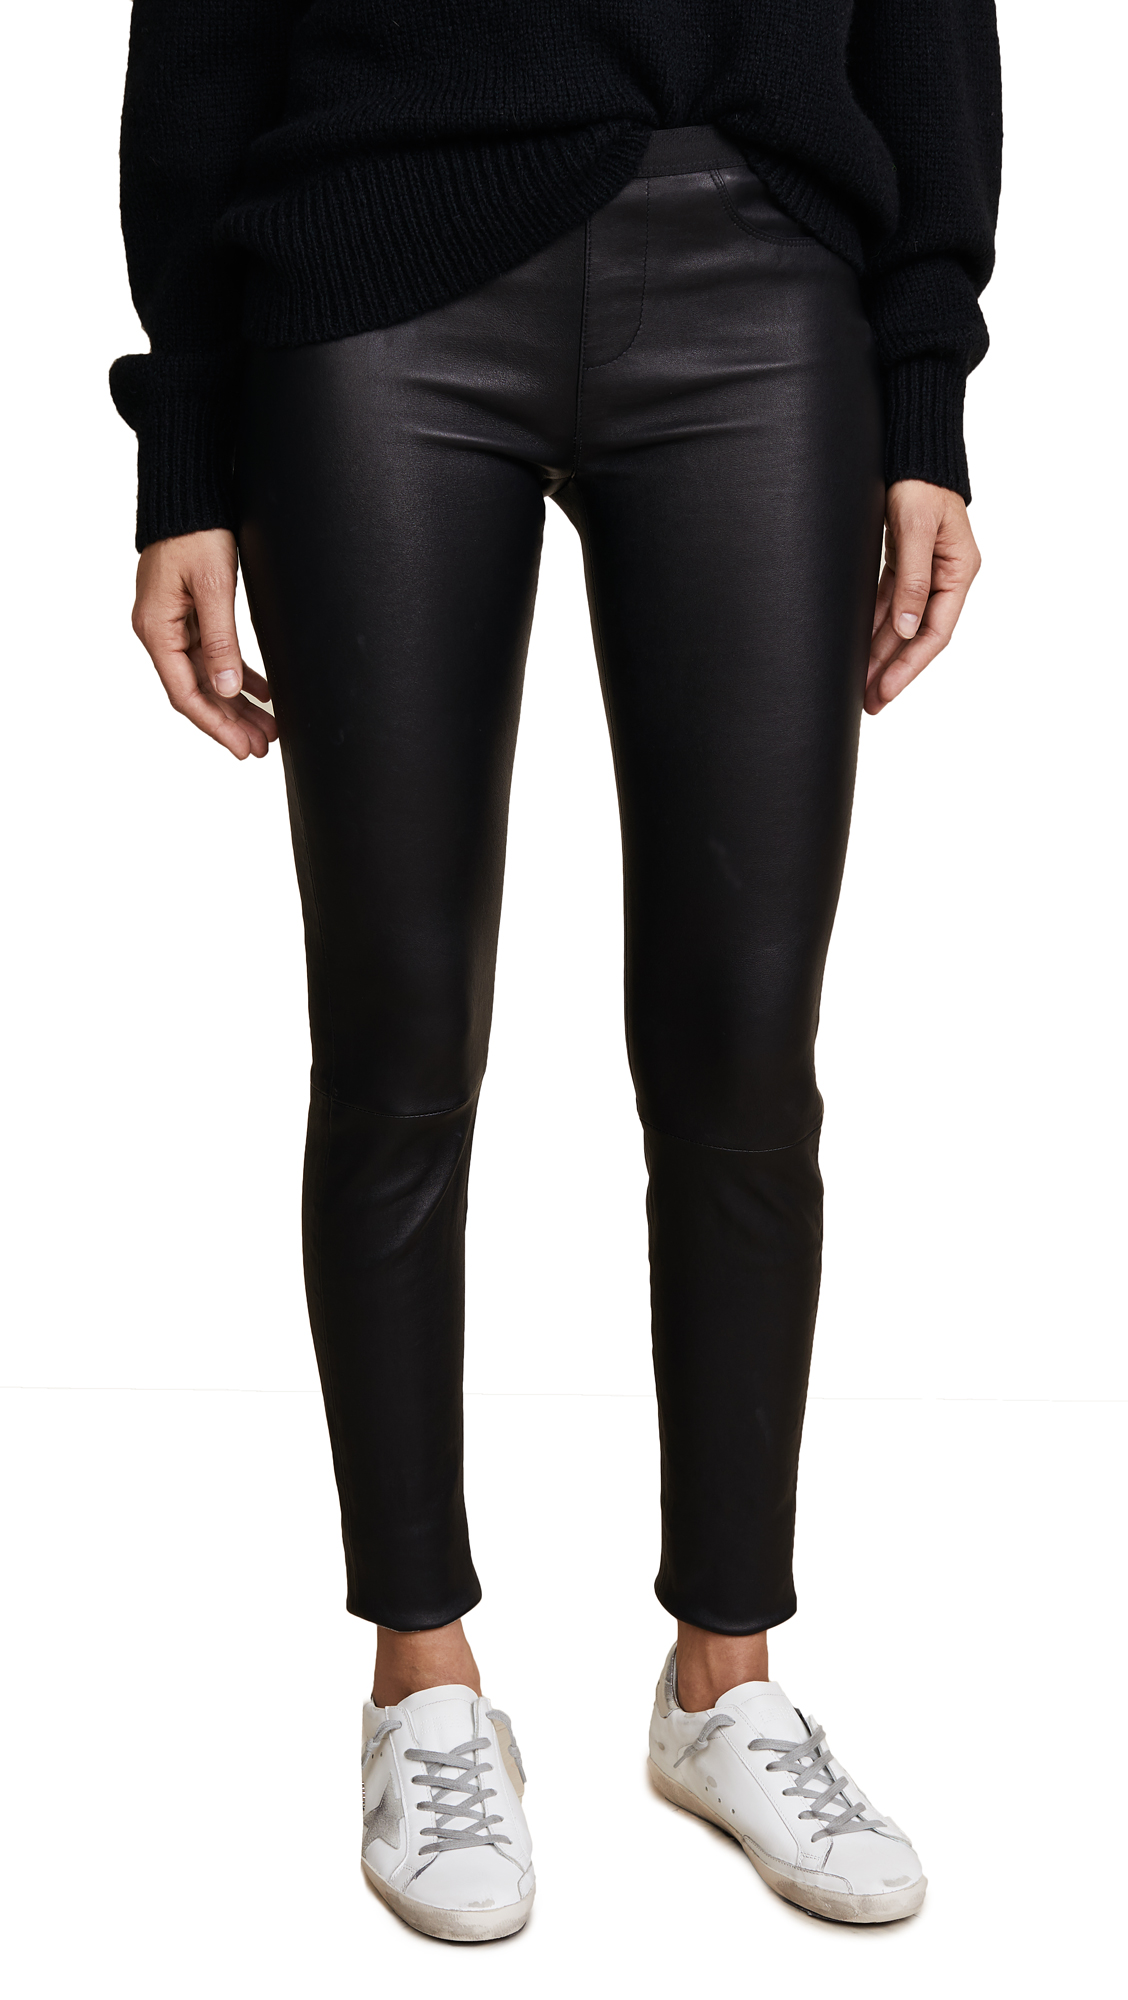 Helmut Lang Stretch Leather Pants - Black